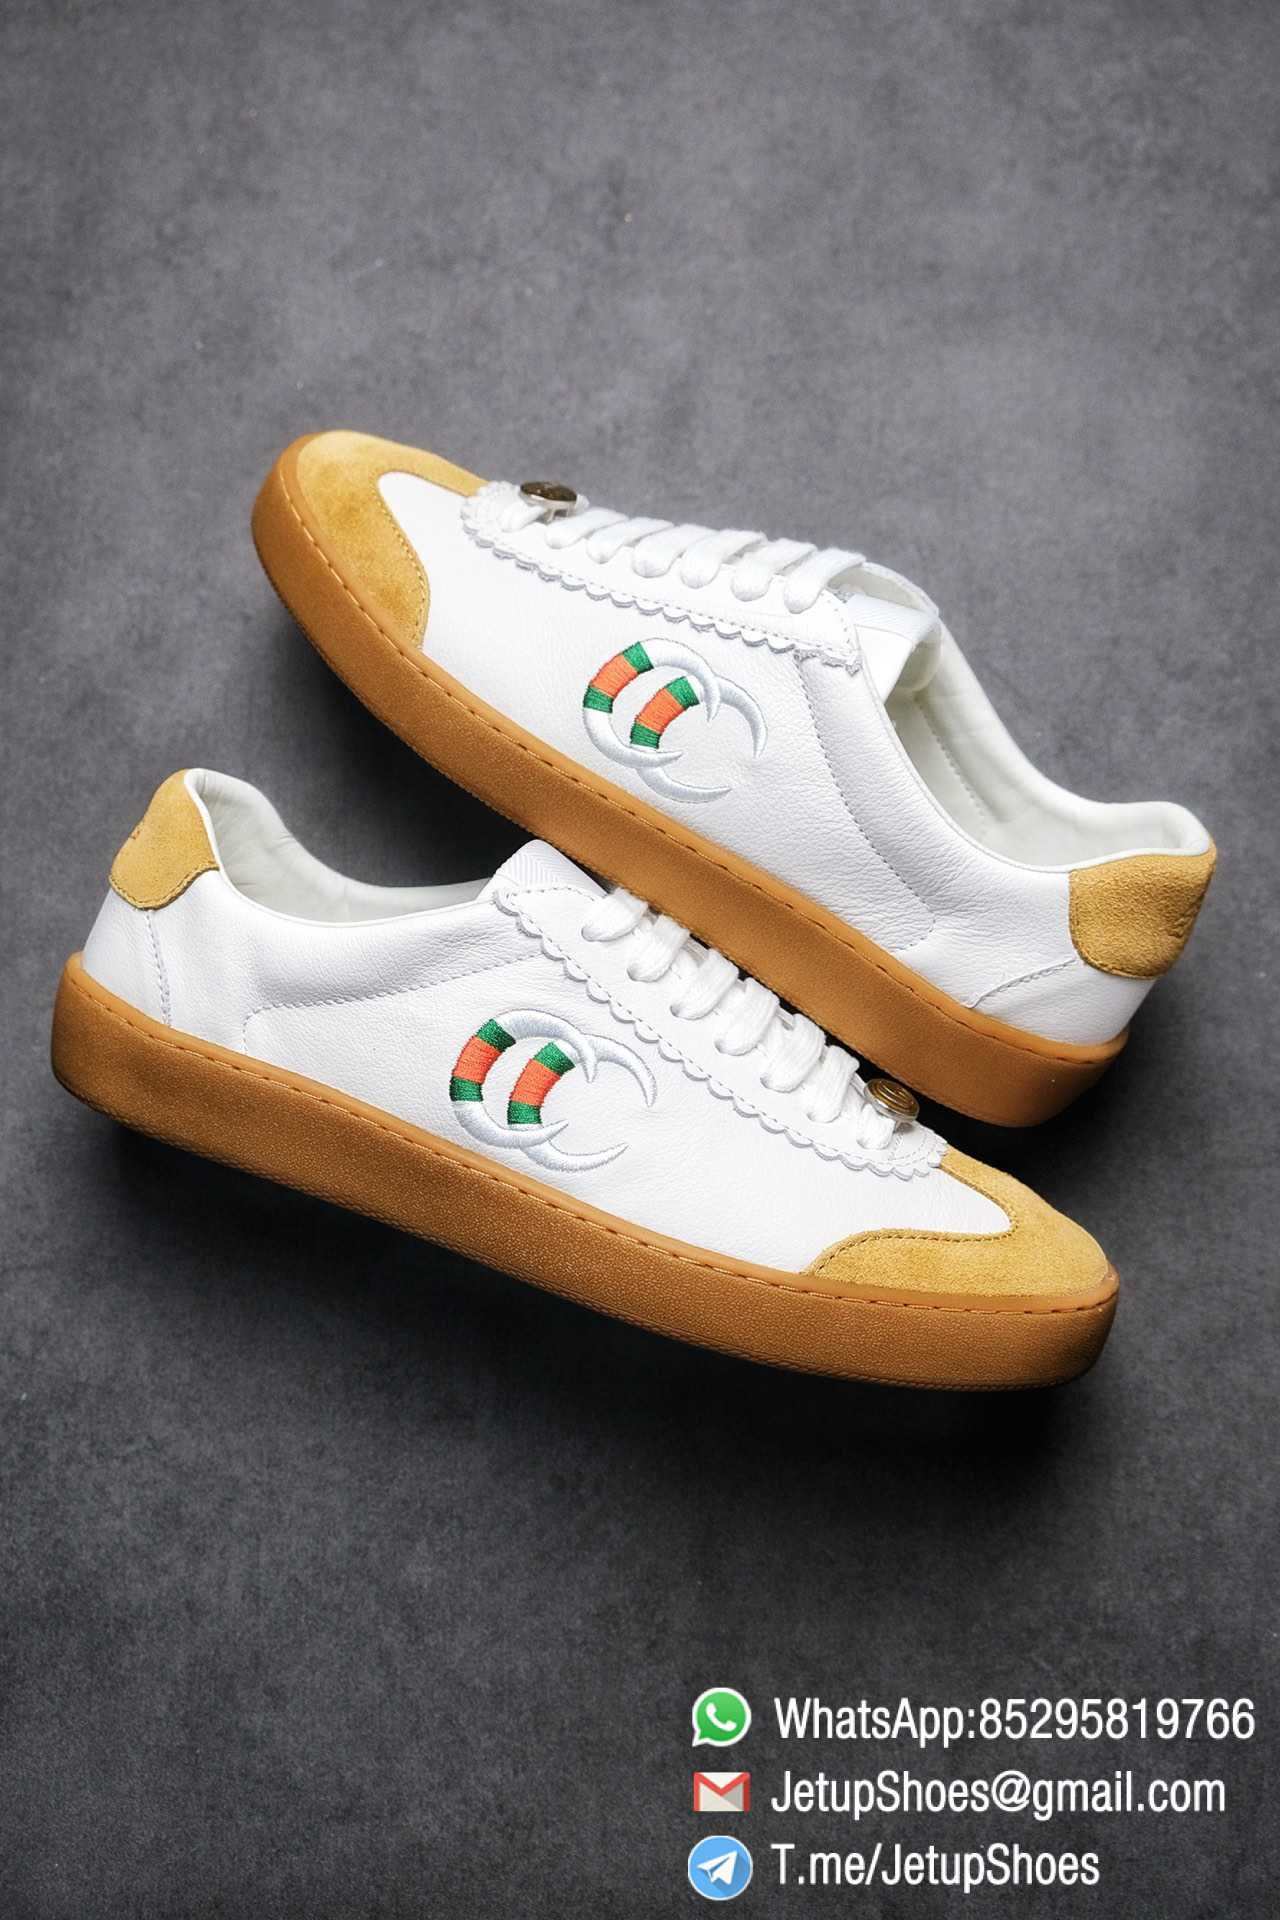 Gucci JBG Leather And Suede Mens Low top Sneaker White Upper White Green Red Embroidered Double C Applique GG Lable Rubber Sole 09